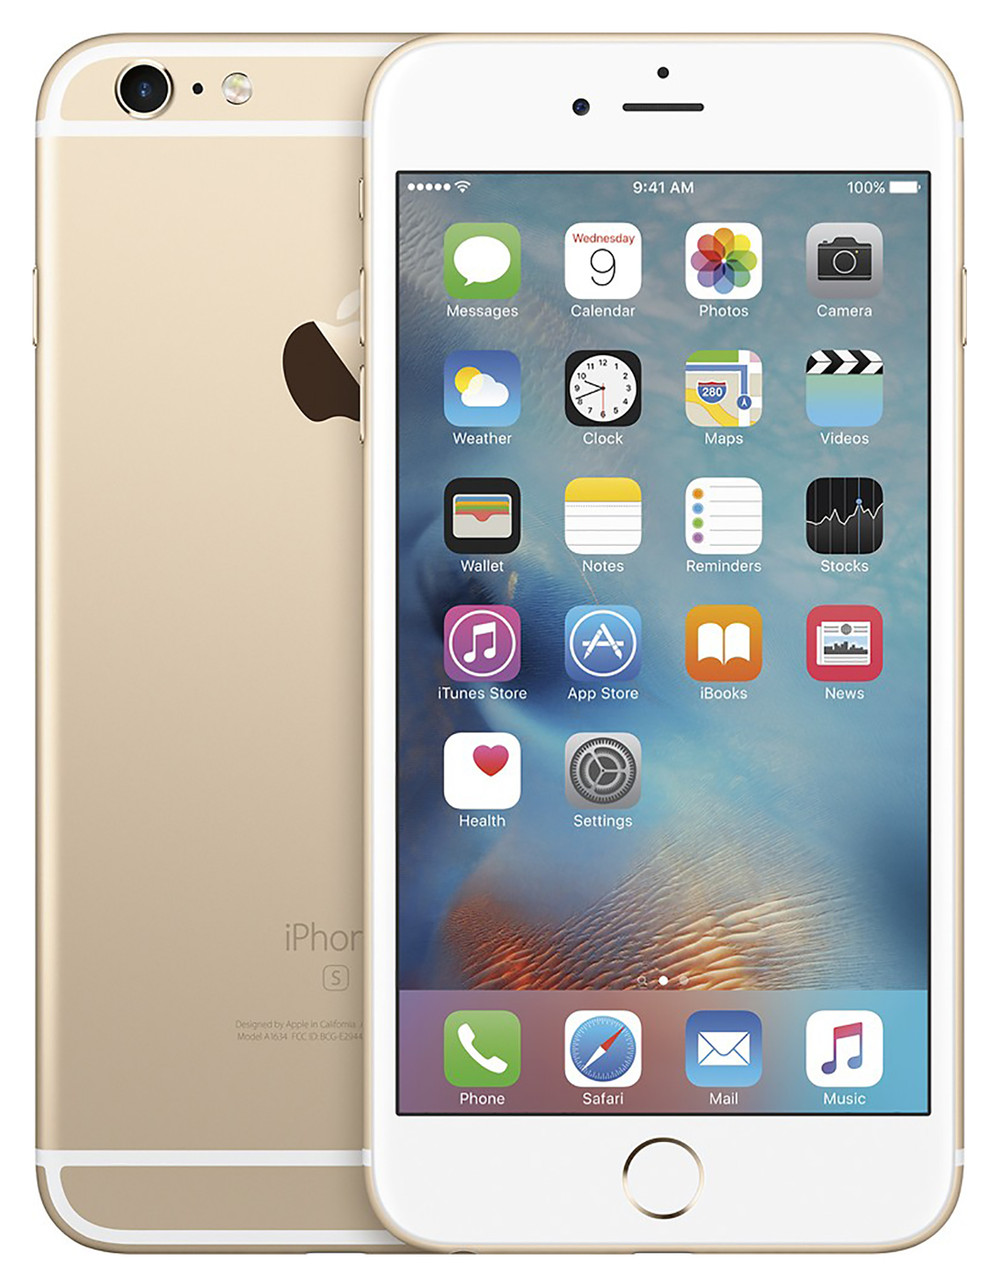 Apple iPhone 6s Plus 64GB Unlocked GSM 4G LTE Dual-Core Phone w/ 12MP Camera - Gold (Used)